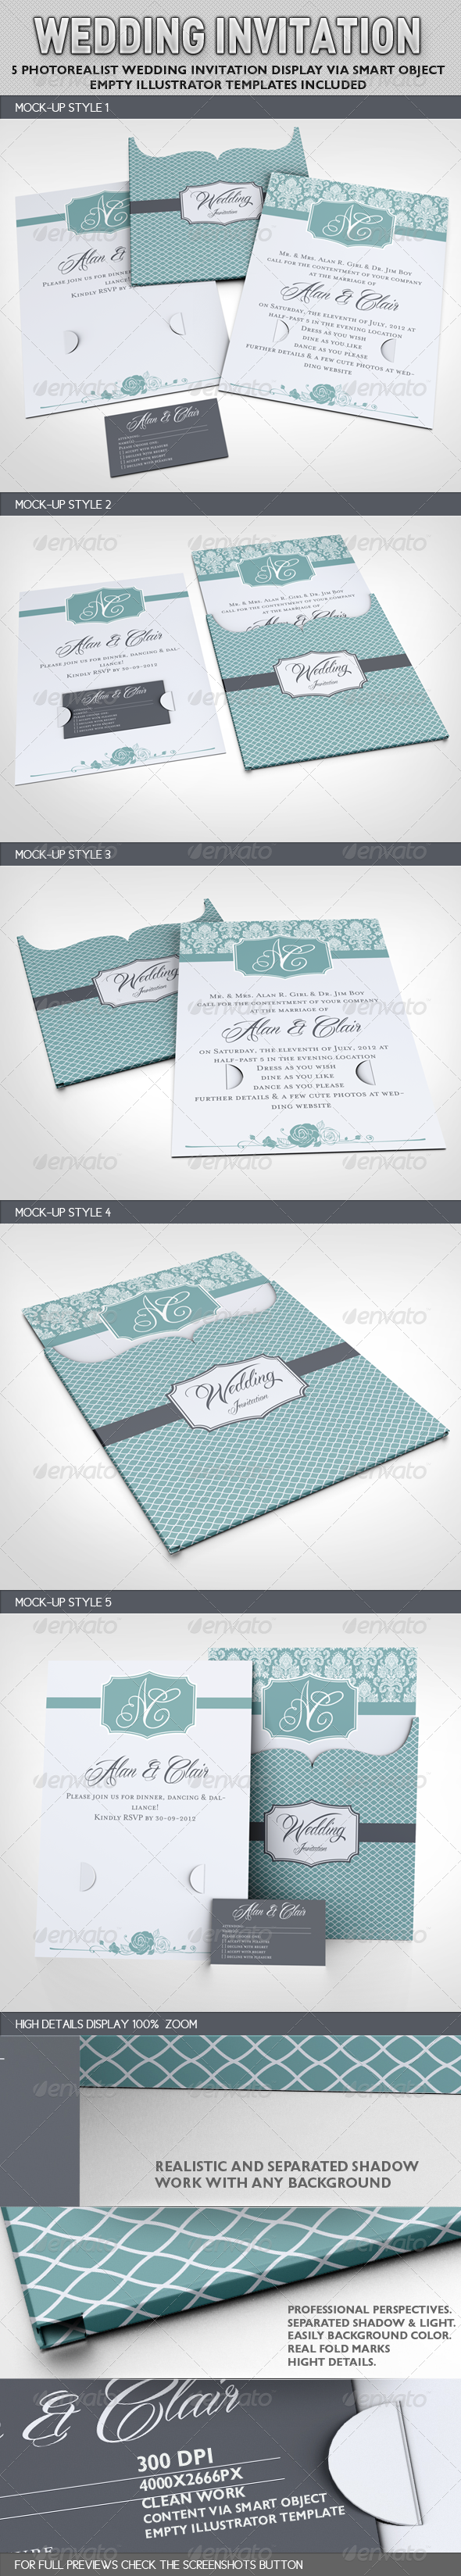 GraphicRiver Wedding Invitation Jacket Mock-up 2997519